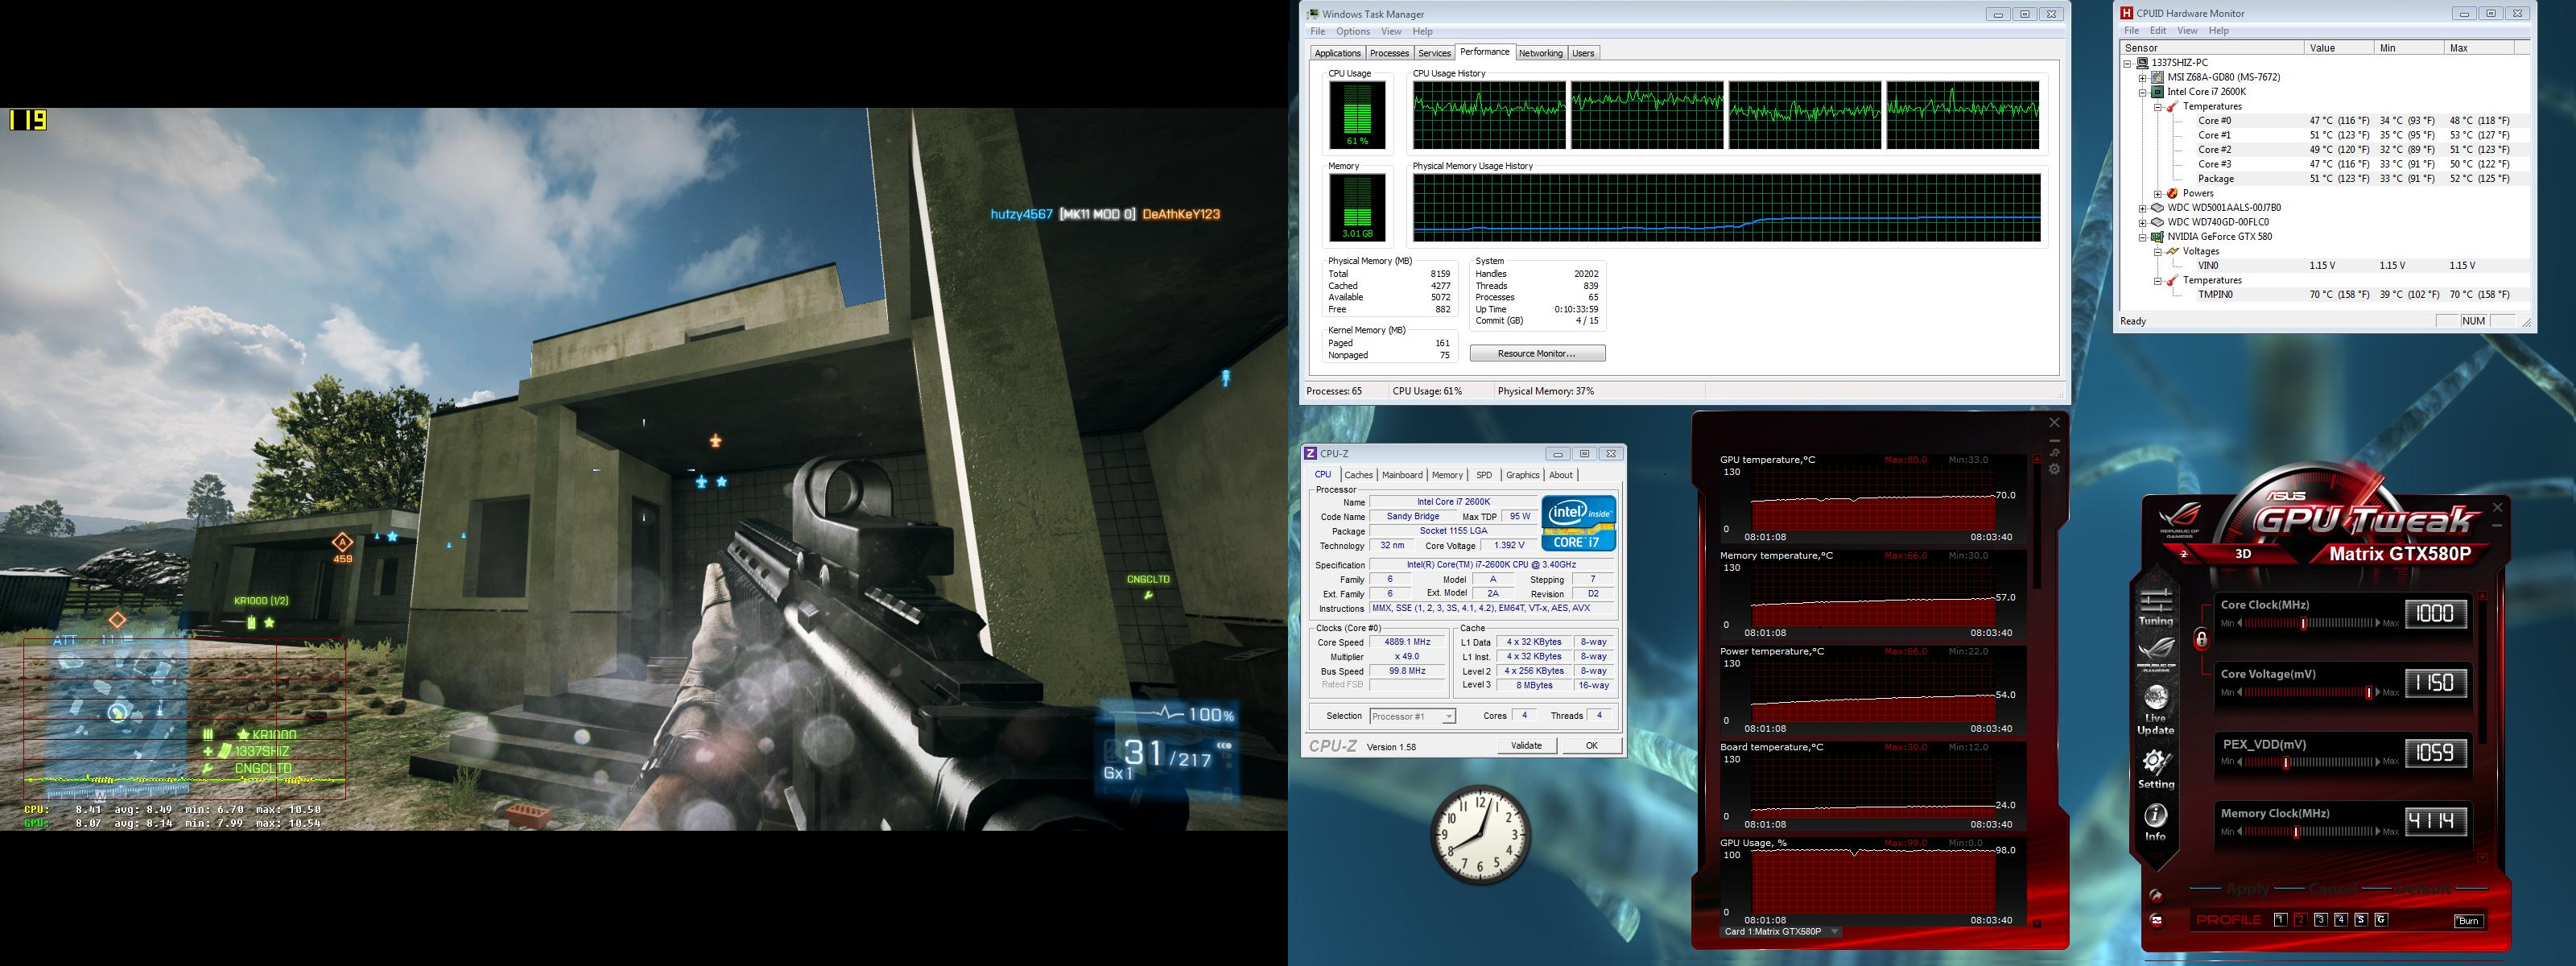 2169bf3_large_settings.png